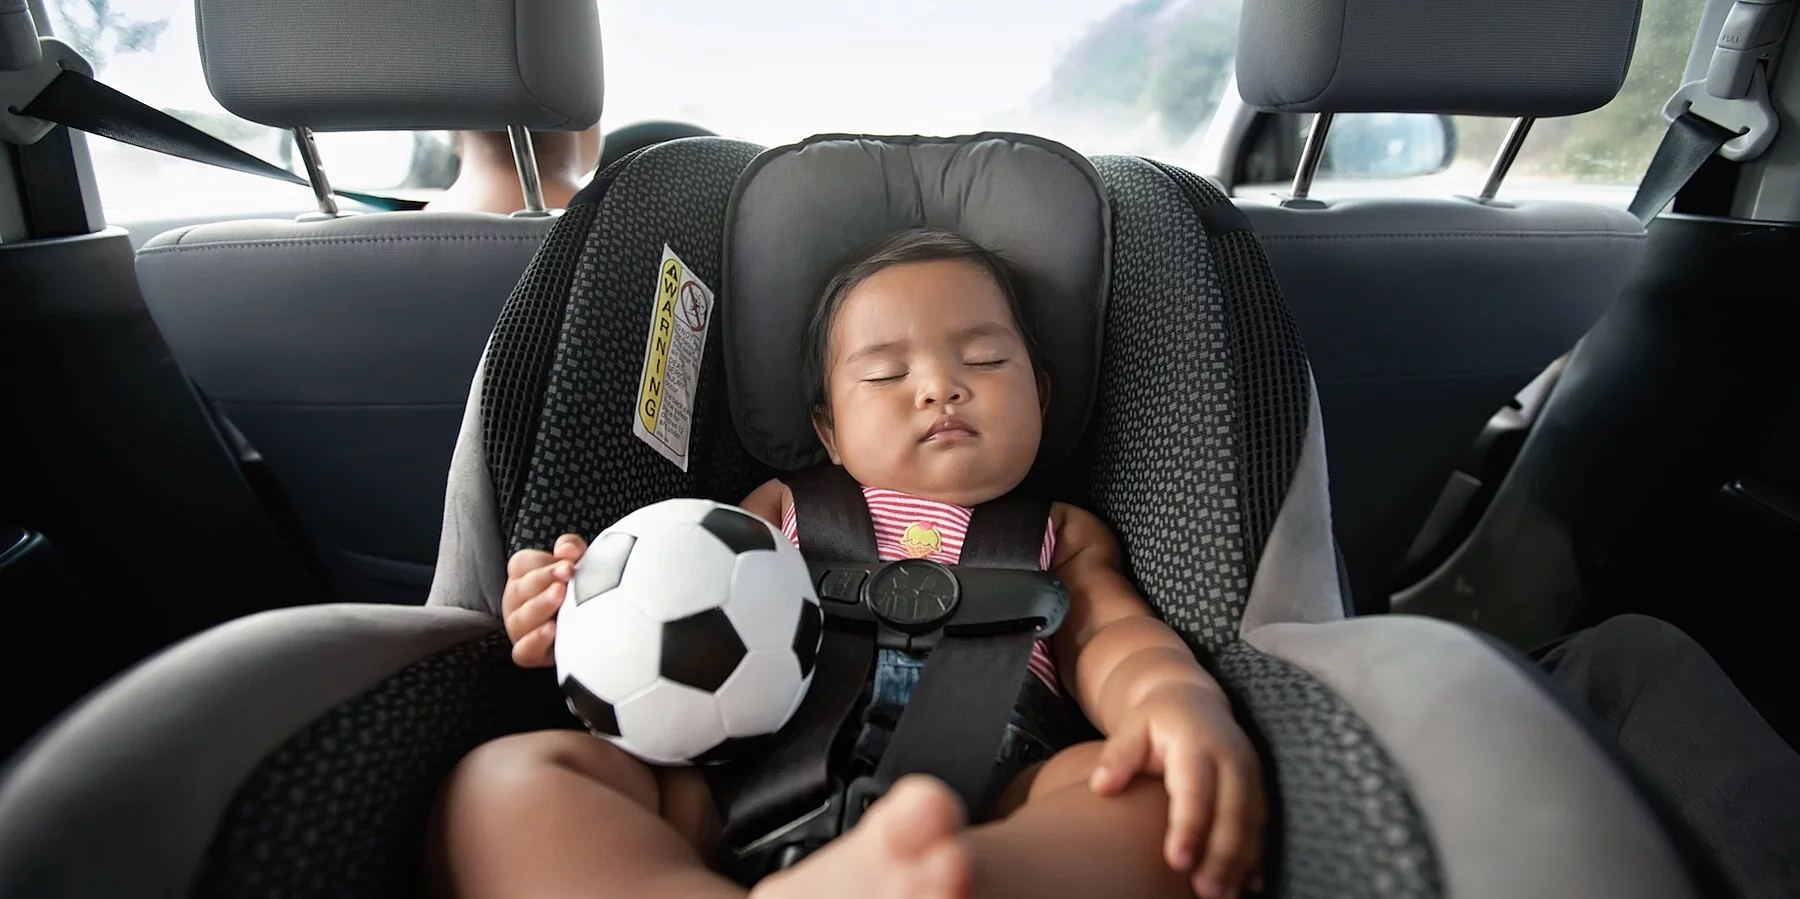 How much should a baby weigh to face forward in car seat?